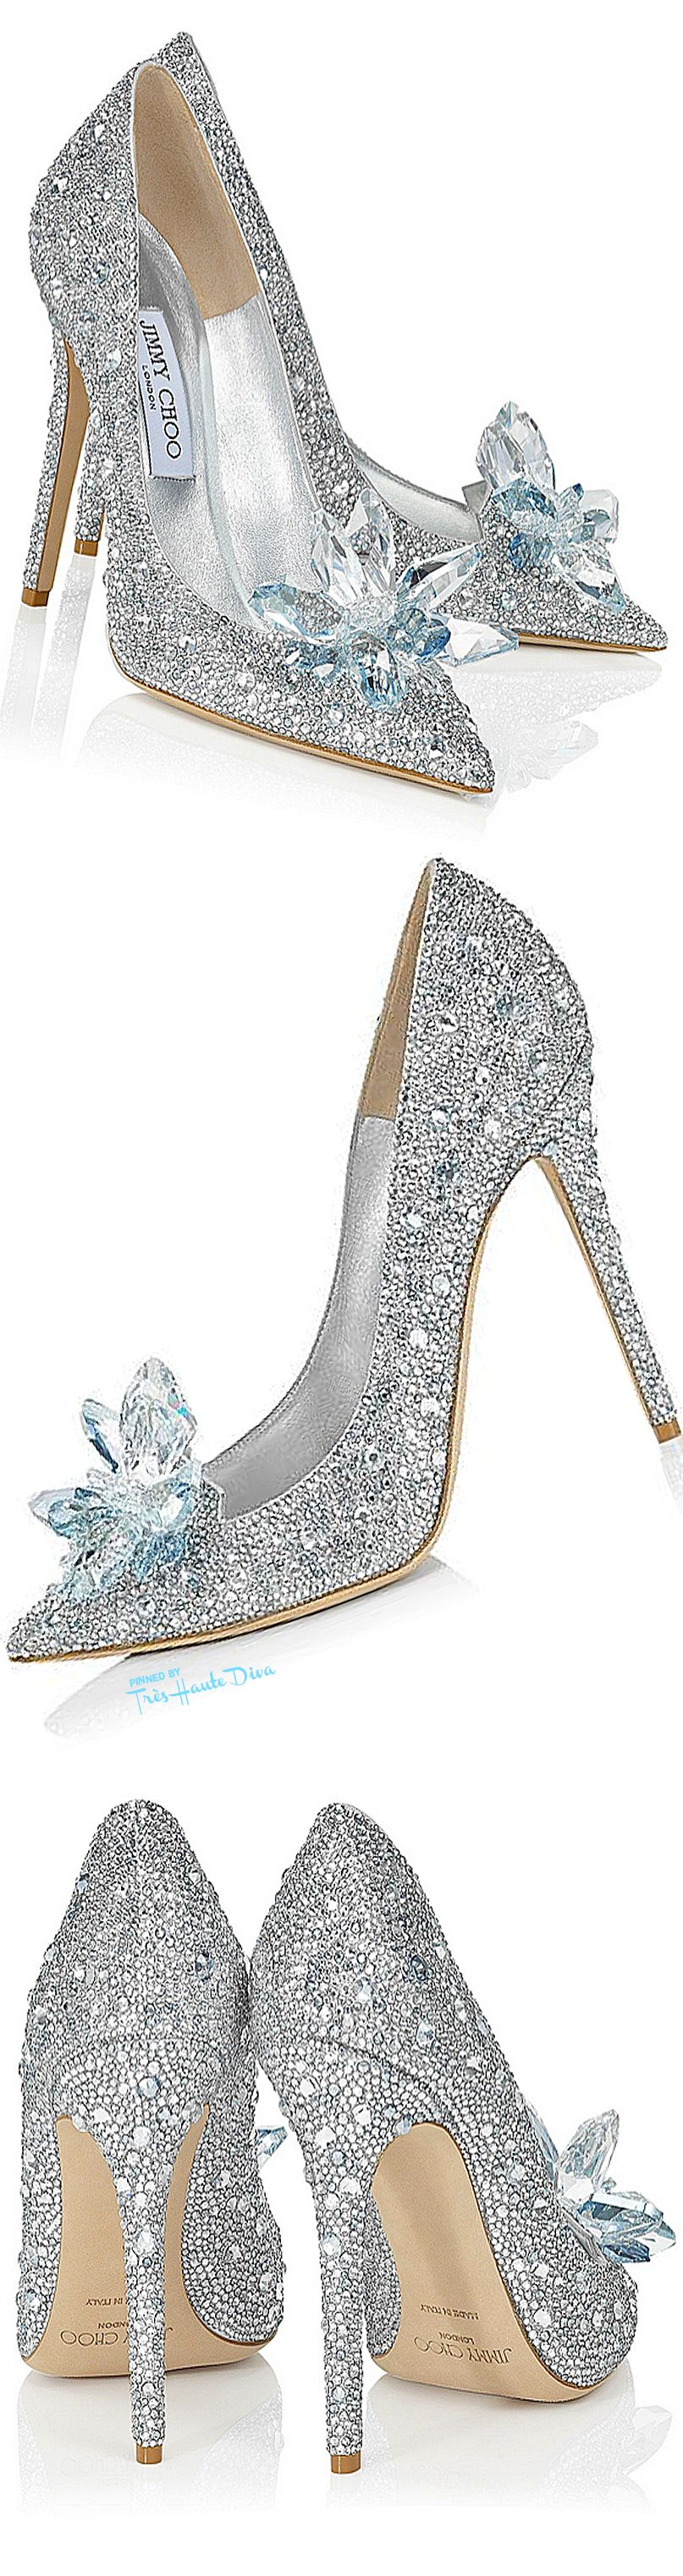 Girls wedding dress shoes  Pin by Mili gozlan on Mili gozlan  Pinterest  Beach Wedding and Diva